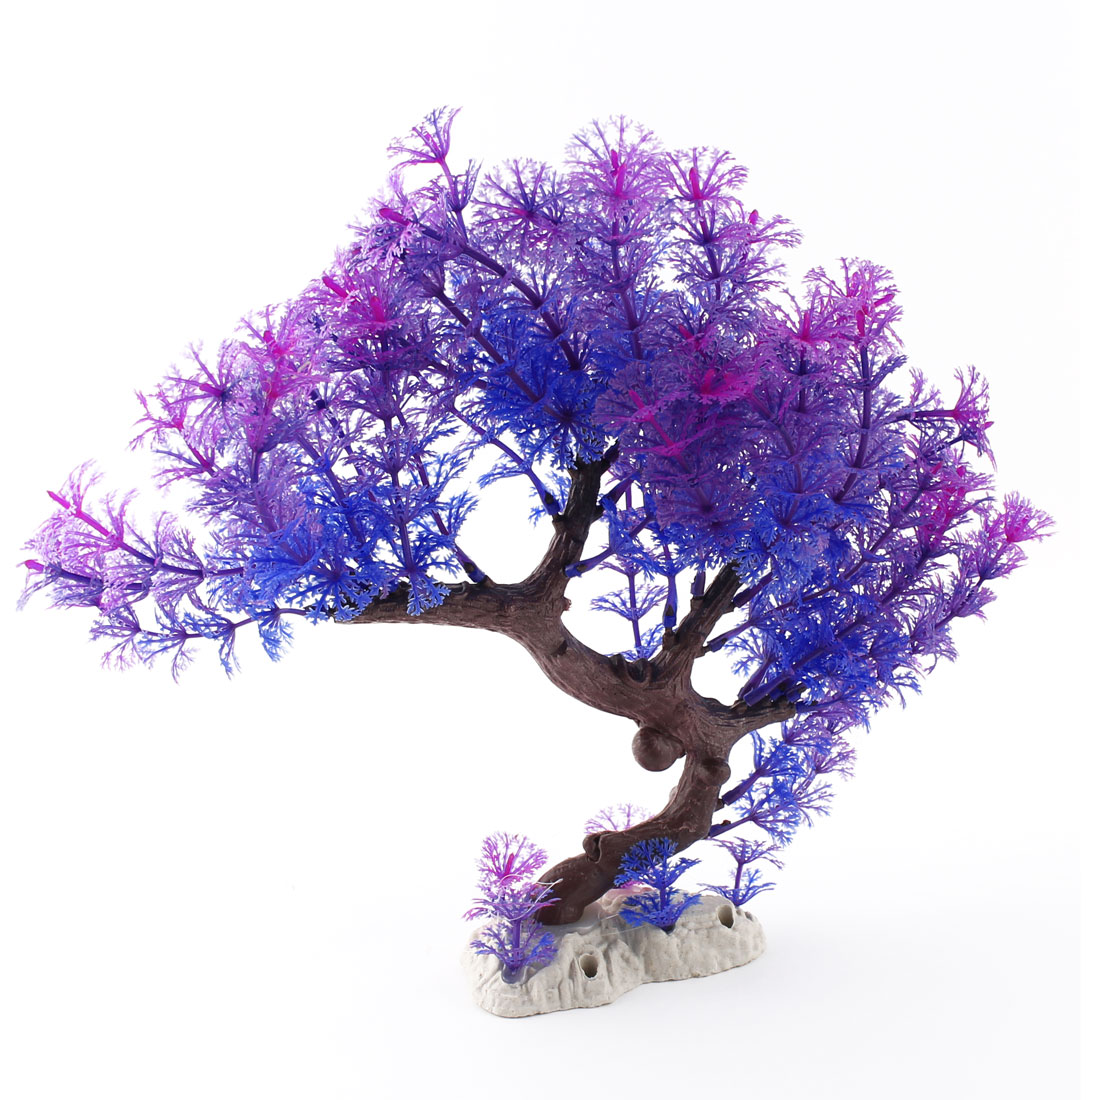 Aquarium Fish Tank Plastic Artificial Underwater Water Tree Plant Ornament Purple Blue